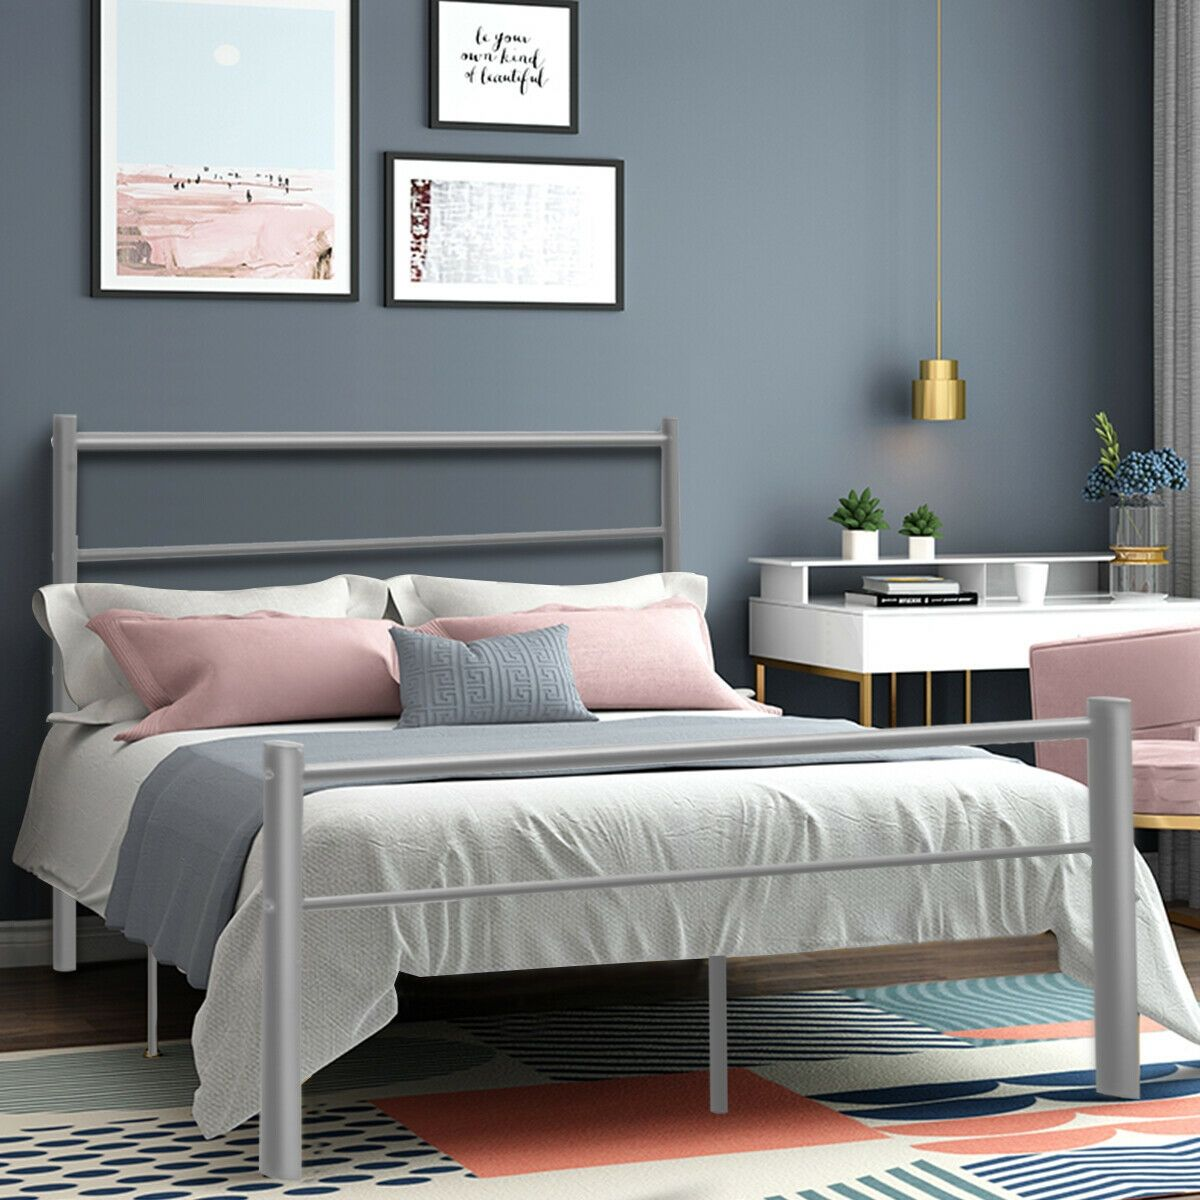 """77.5"""" x 55.5"""" x 35.0"""" 10 Legs Full Size Metal Bed Frame"""